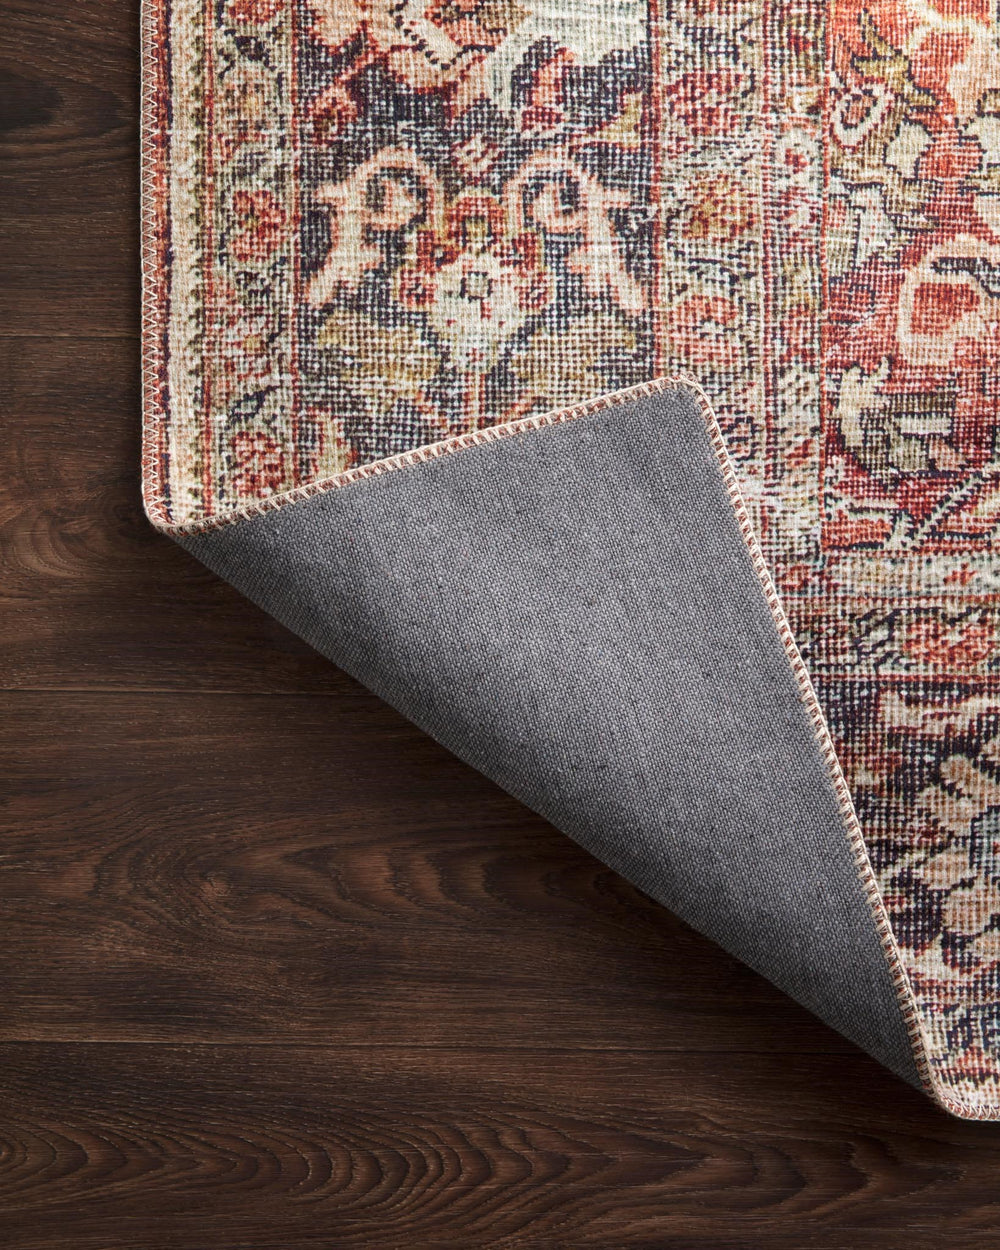 The Layla Collection is traditional and timeless, with a beautiful lived-in design that captures the spirit of an old-world rug. This traditional power-loomed rug is crafted in China of 100% polyester with a classic and sophisticated color palette and subtle patina.  Power Loomed 100% Polyester LAY-02 Spice/Marine